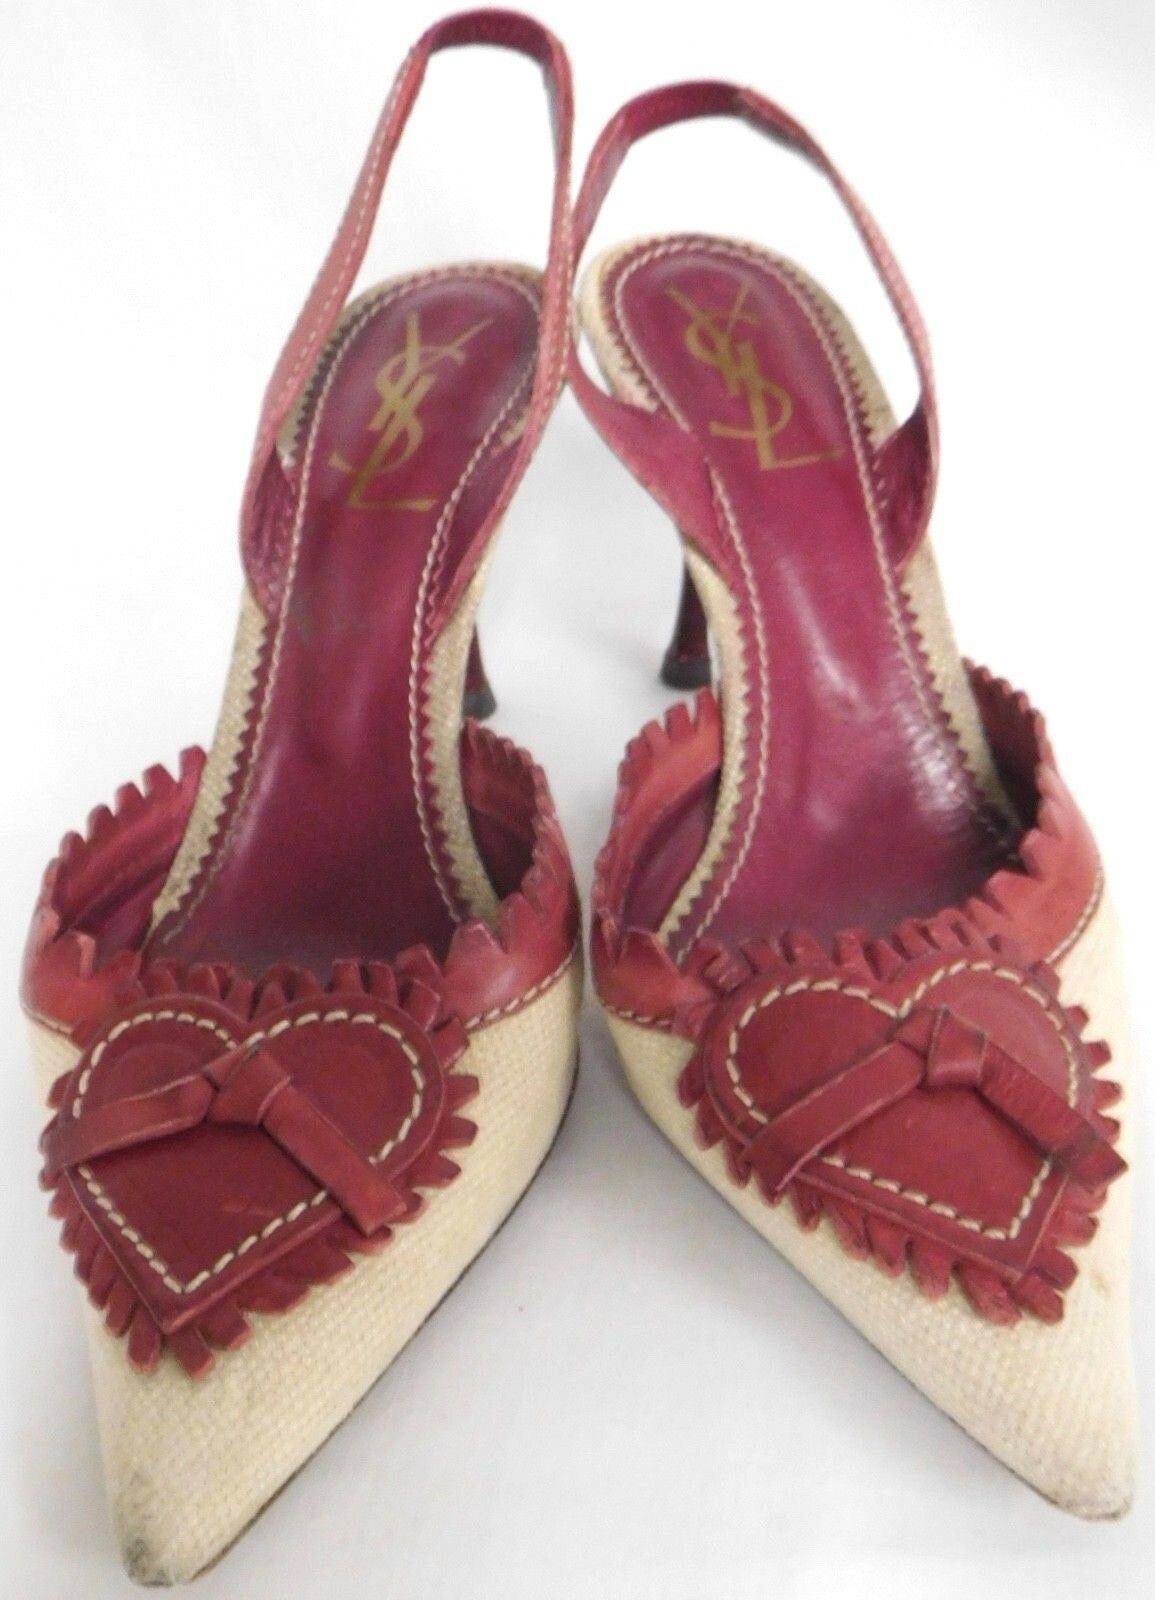 YSL RED LEATHER & TAN FABRIC VALENTINES HEART SLINGBACK PUMPS 3 3/4